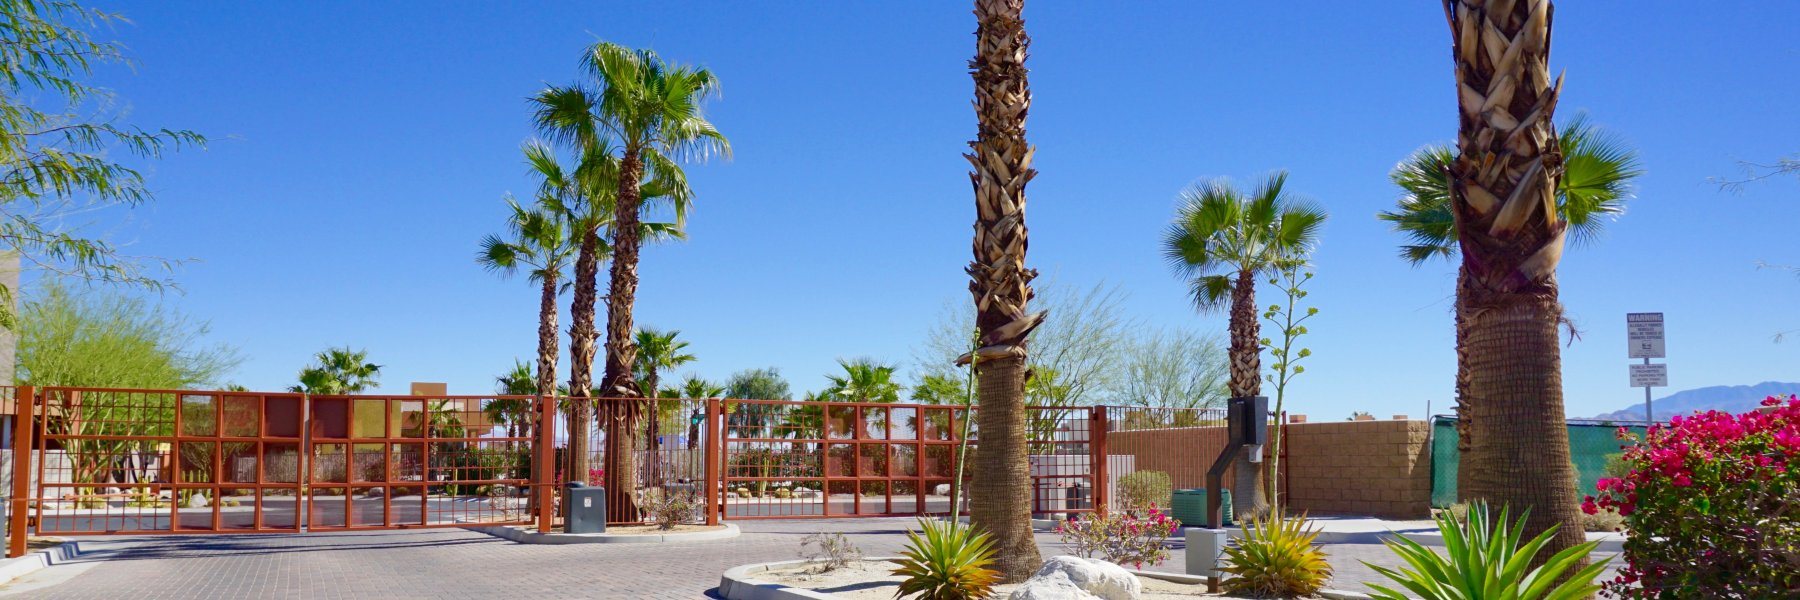 Palermo is a community of homes in Palm Springs California